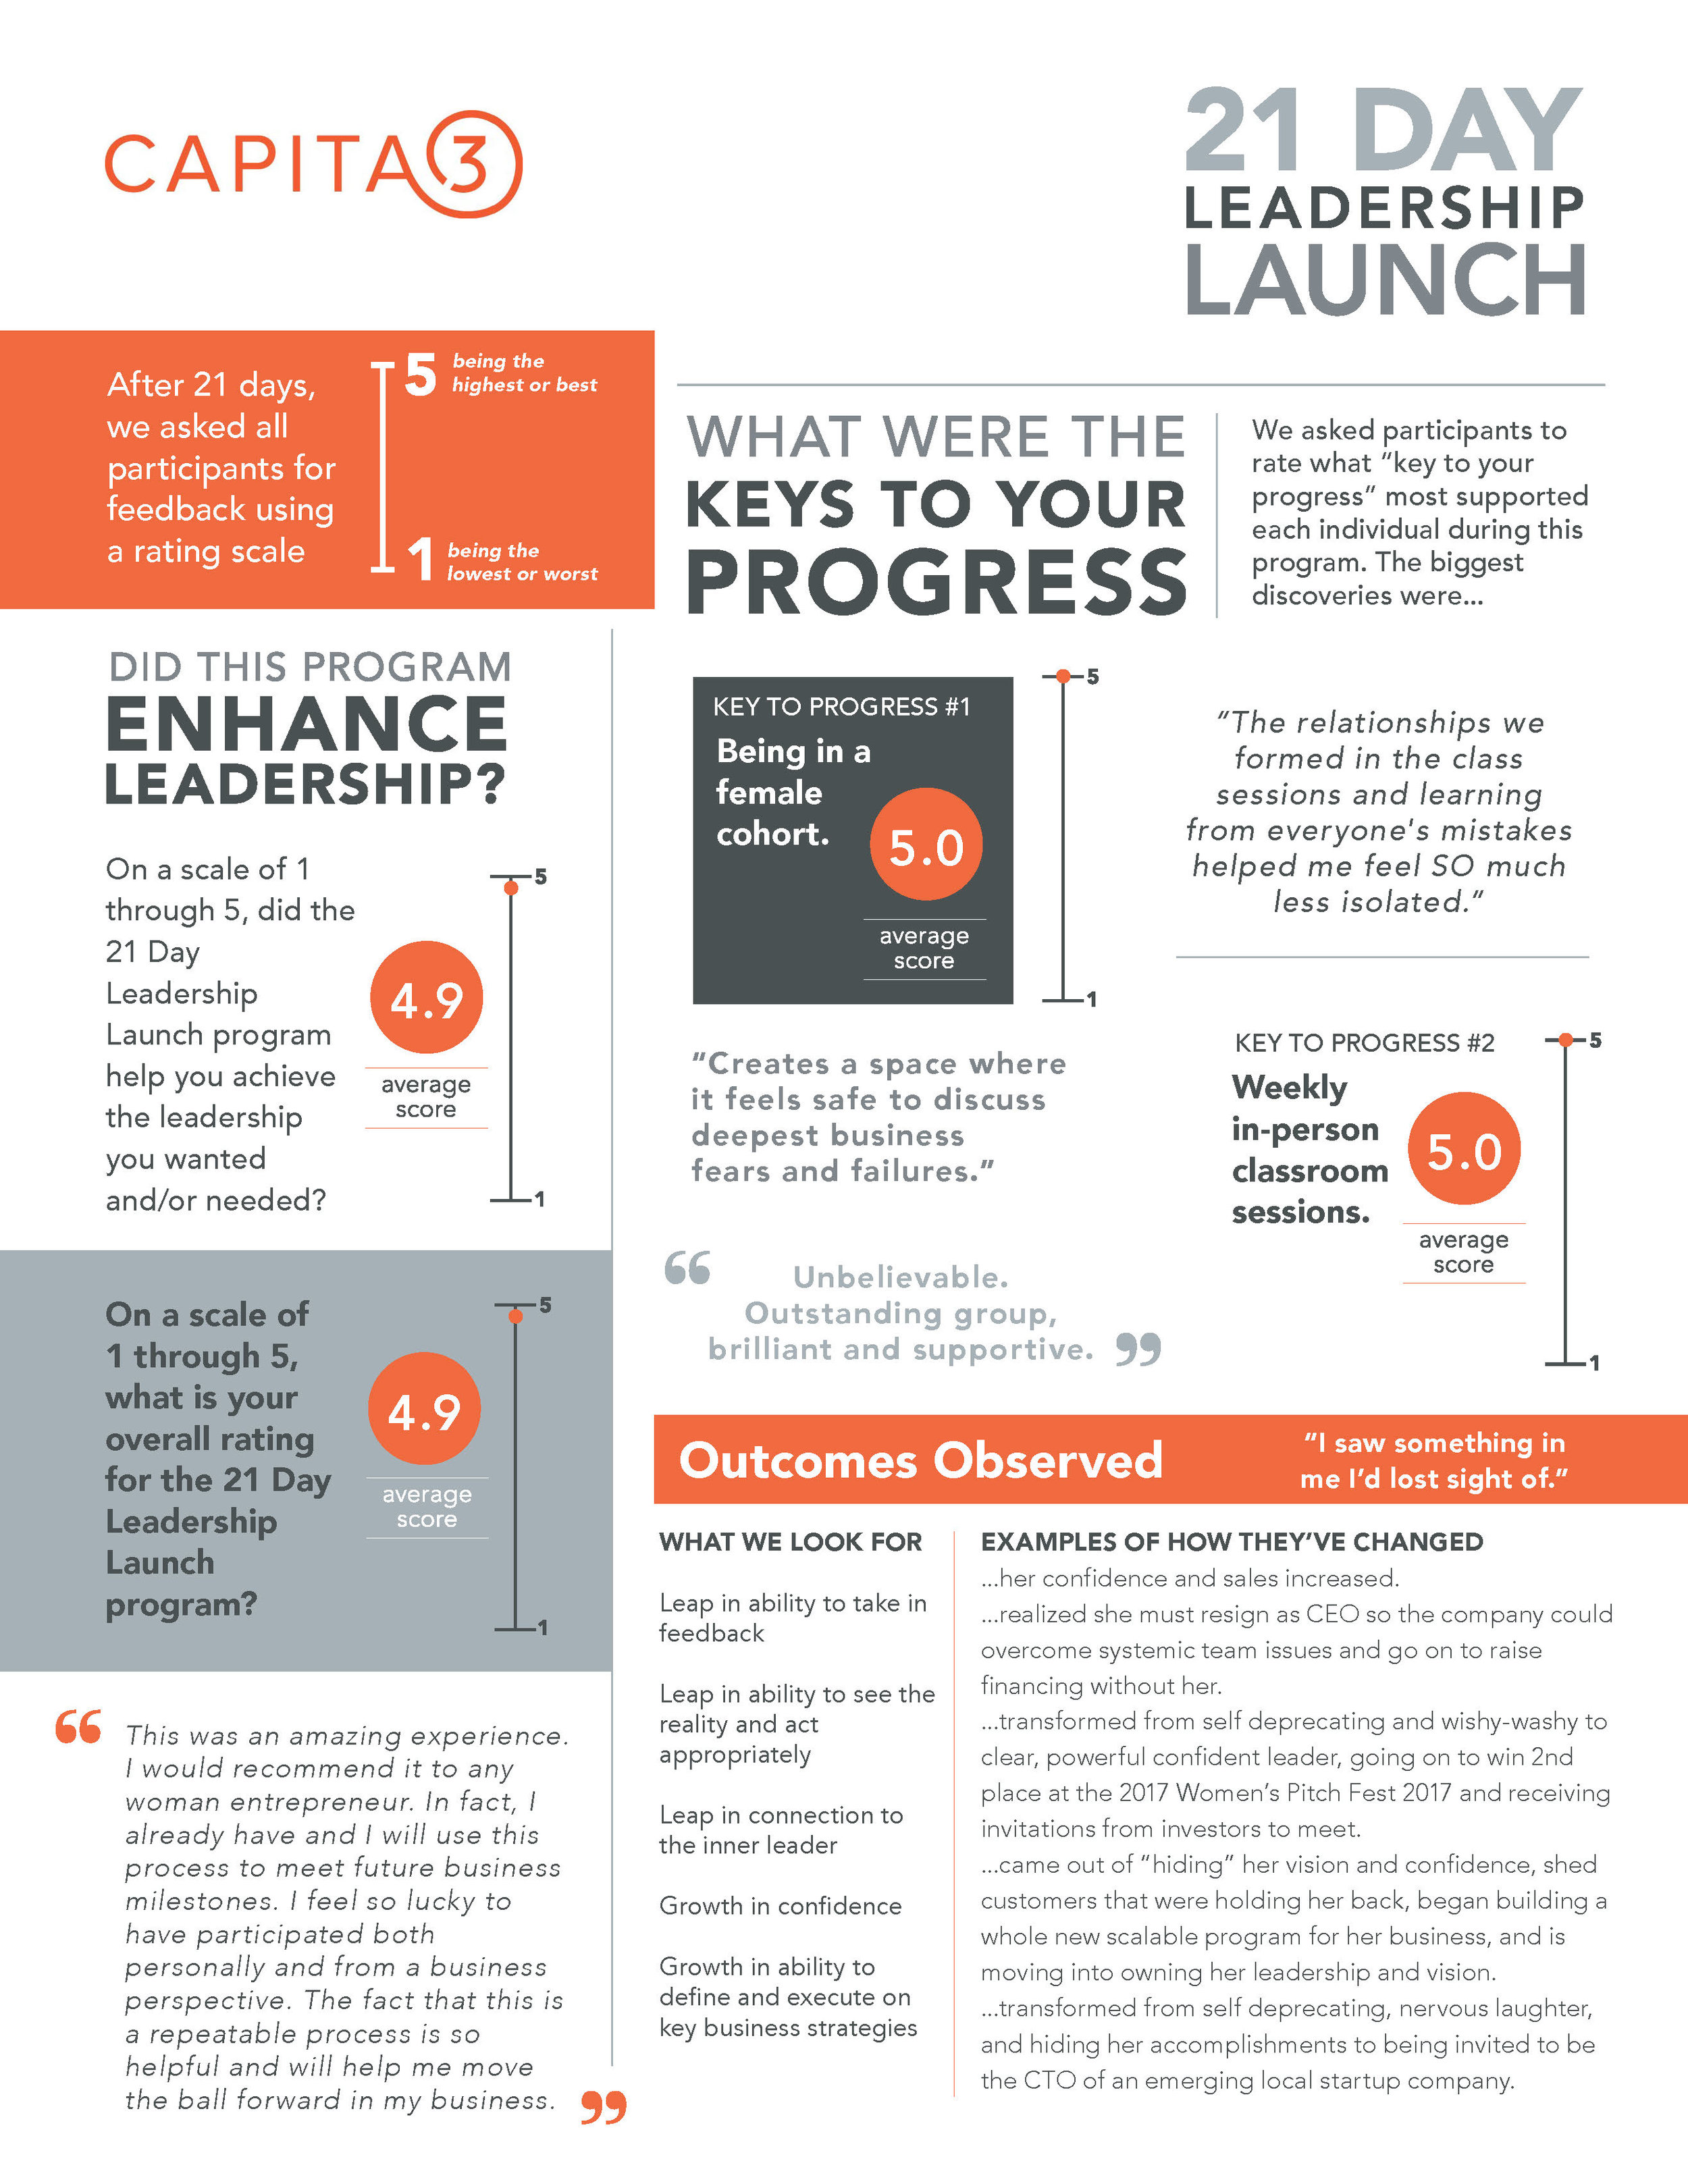 Capita3 Infographic  containing results and feedback from previous programming.